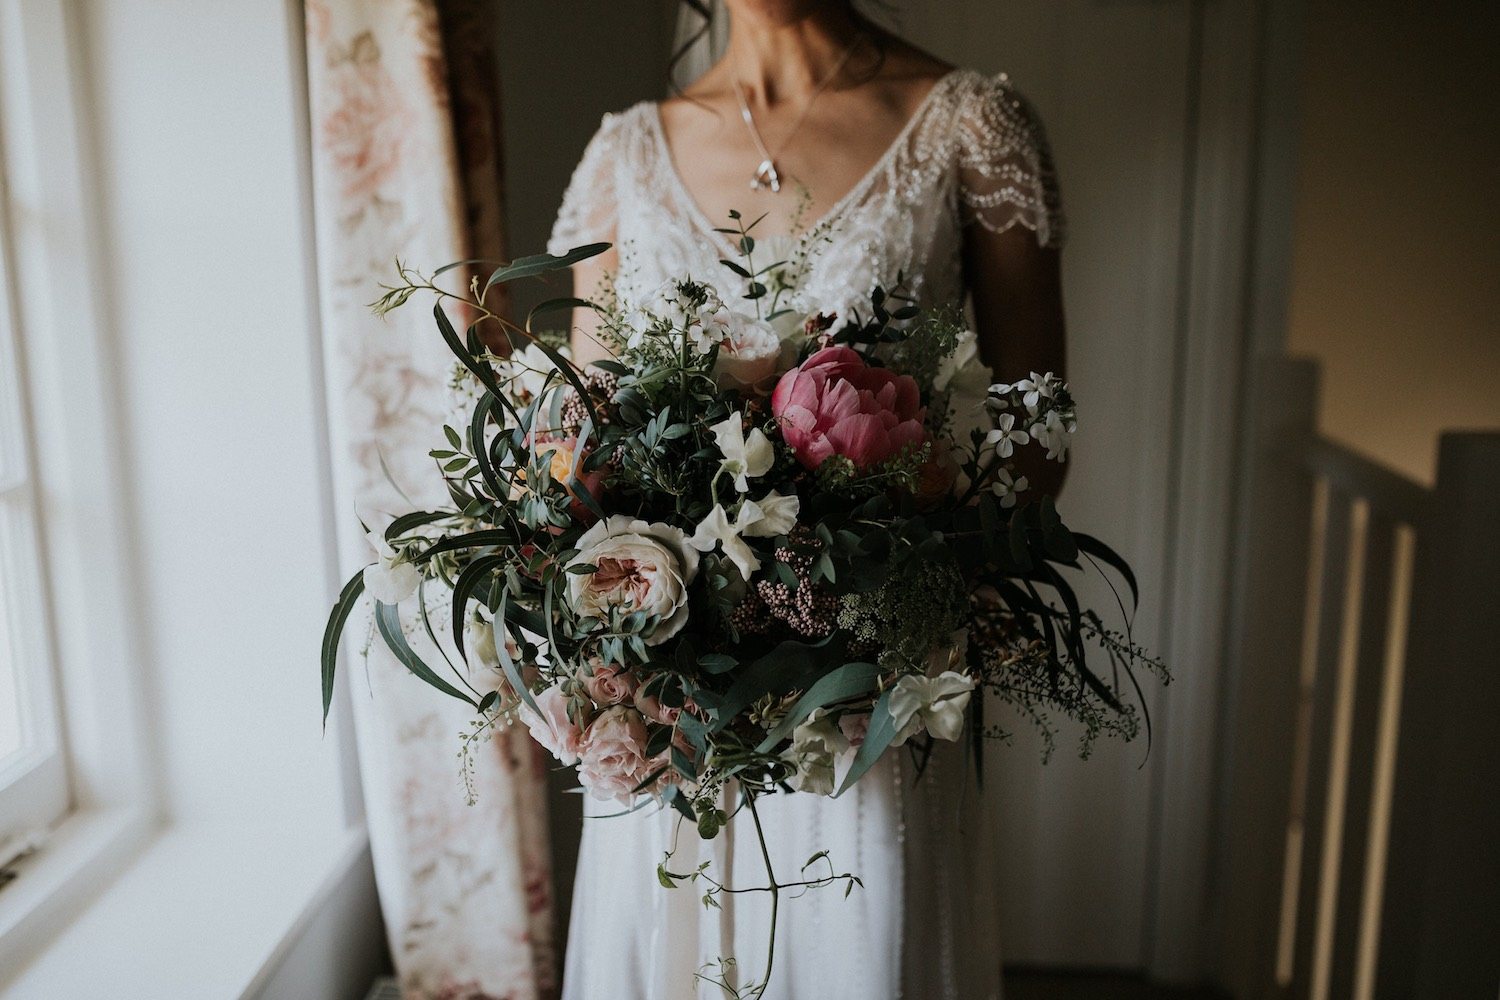 Bride standing by window holding bouquet